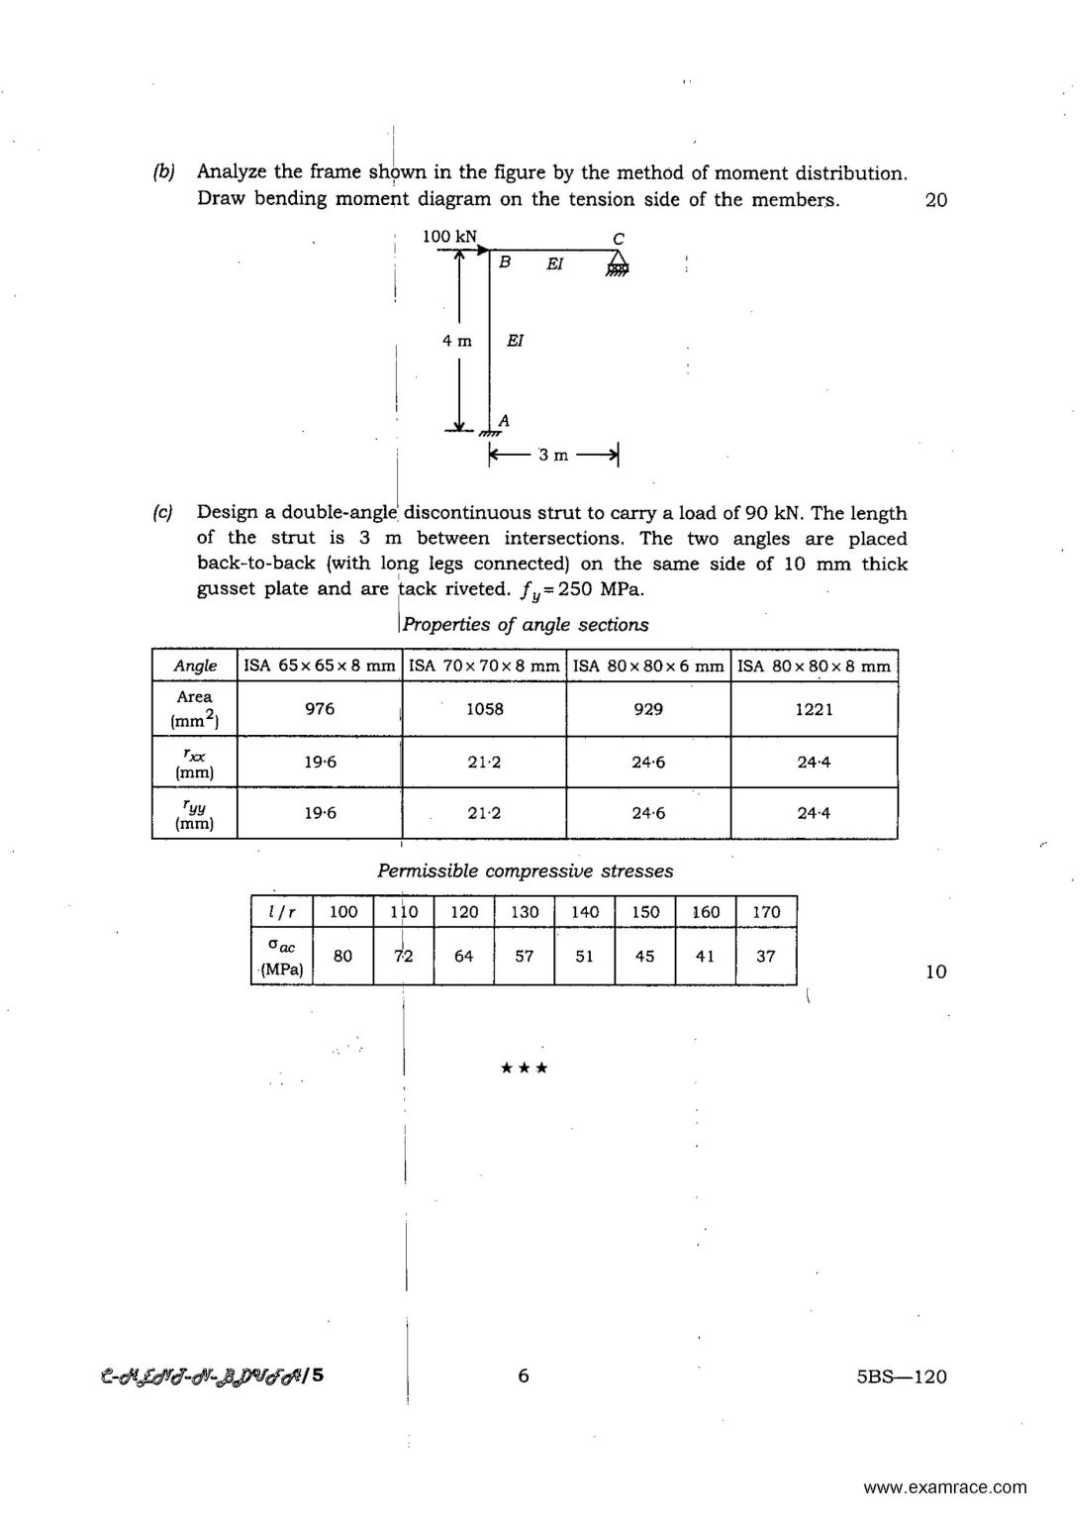 m.sc thesis in civil engineering Civil engineering masters theses collection  to subscribe to an rss feed for the civil engineering masters theses collection, please cut and paste this url into your .